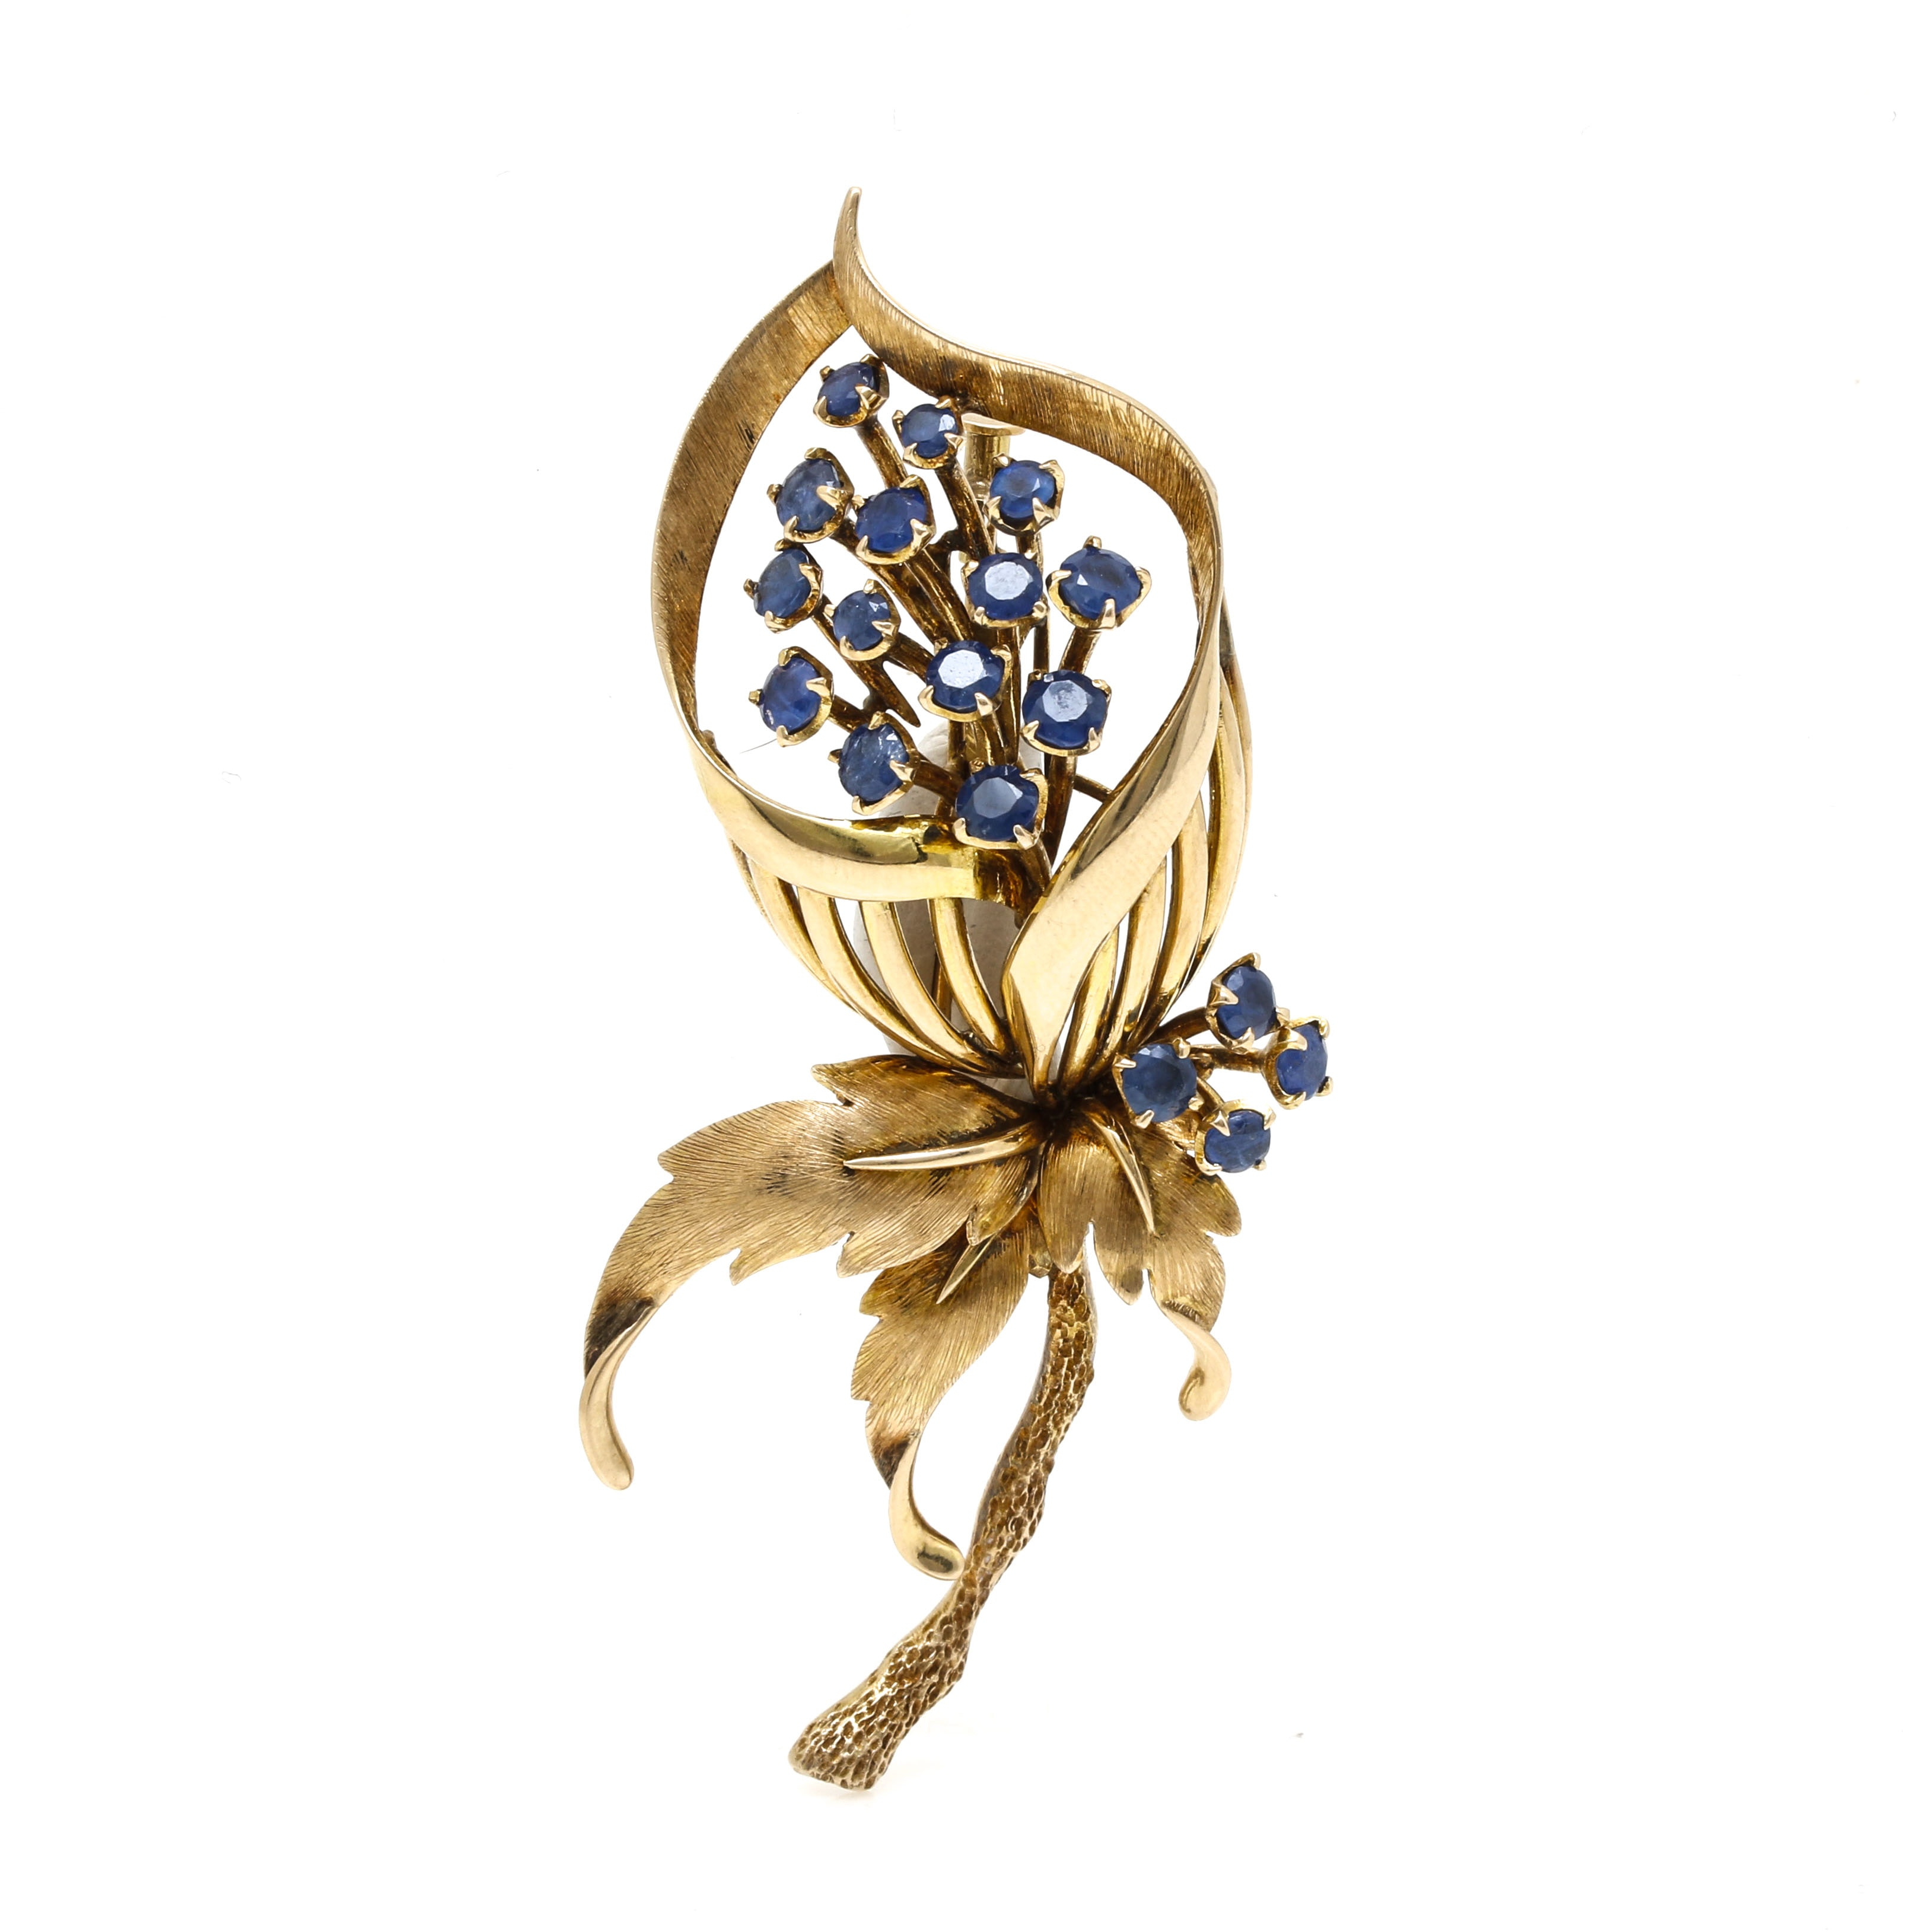 14K Yellow Gold Sapphire Floral Brooch